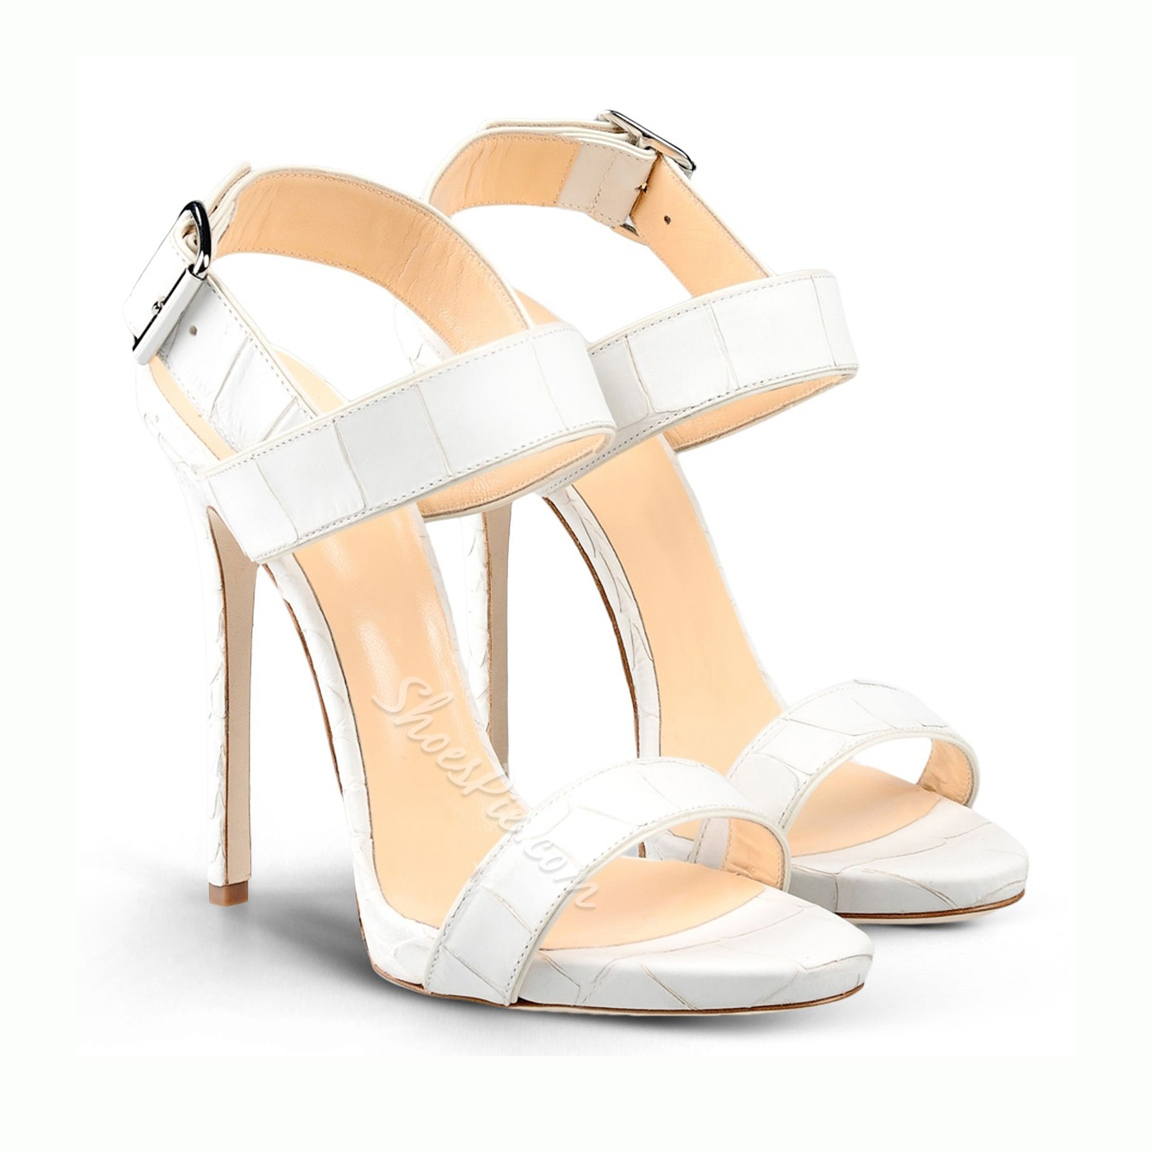 Shoespie Buckle Decorated Solid Color Stiletto Sandals